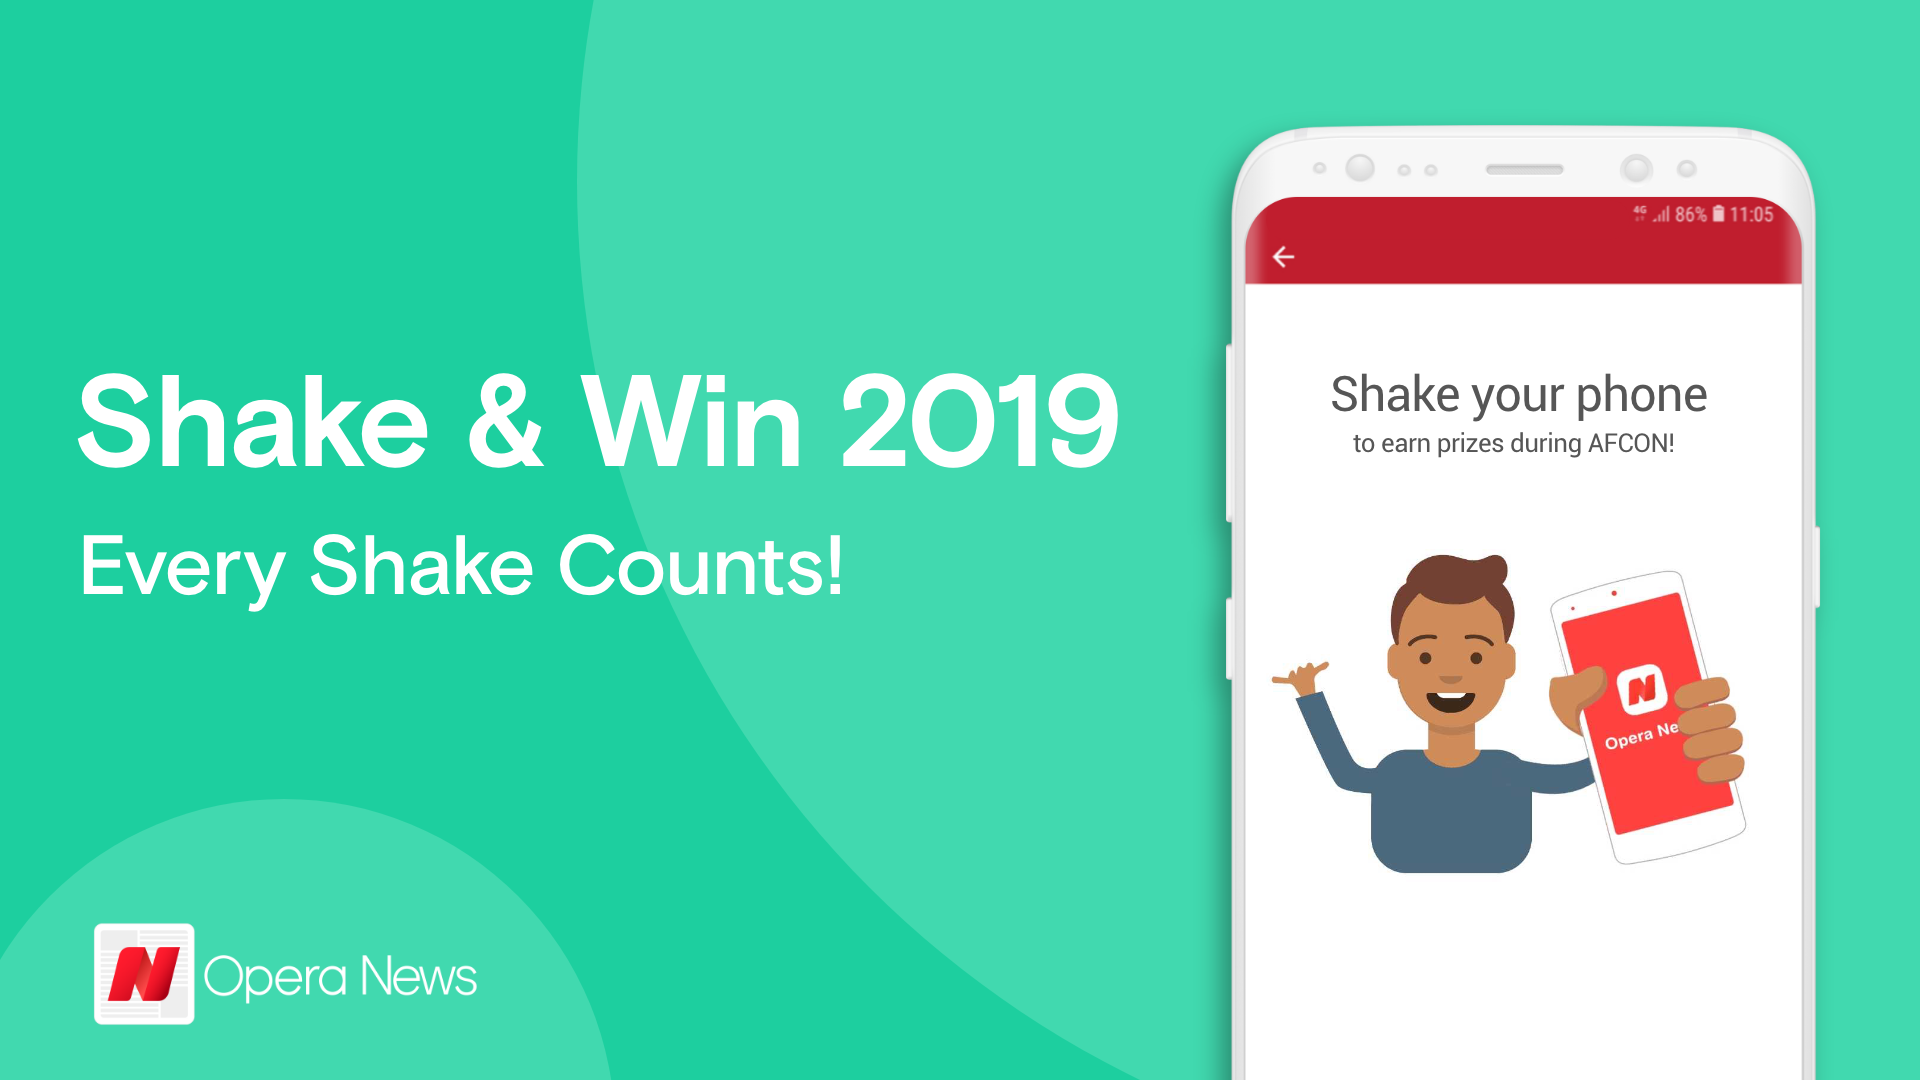 Shake and Win is back in Opera News with over 200 million